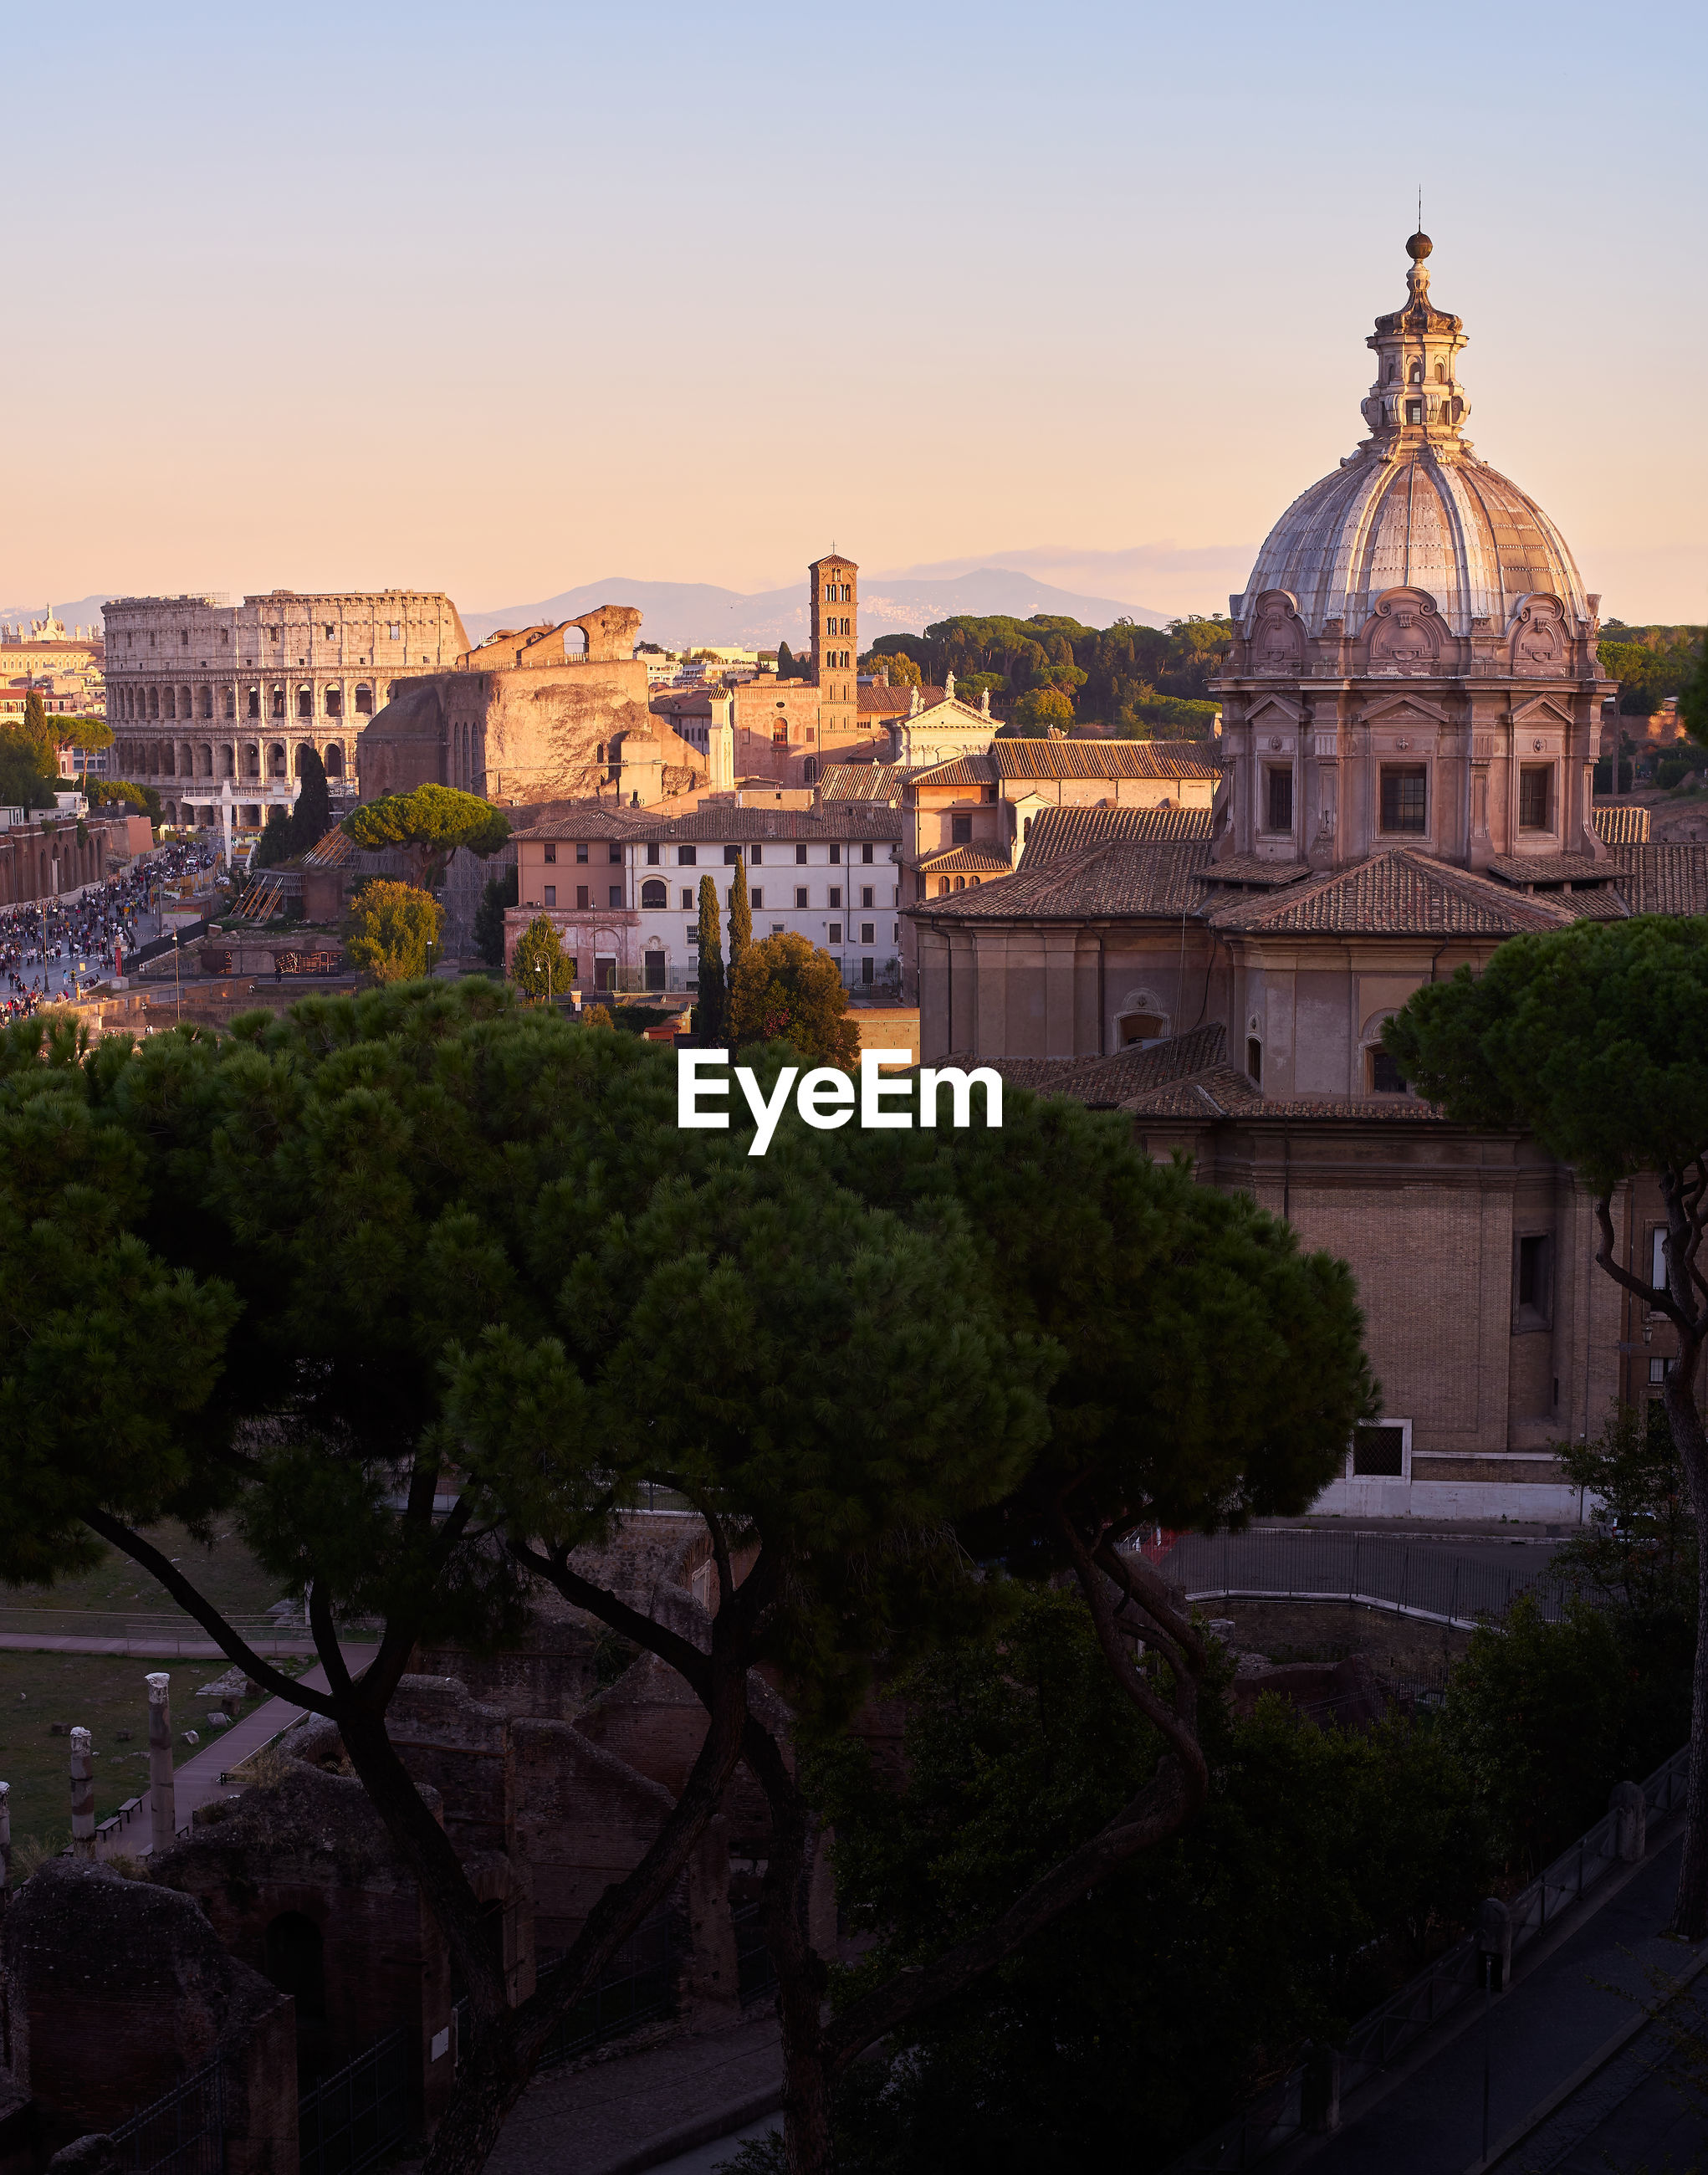 Buildings in city against sky during sunset, coloseum